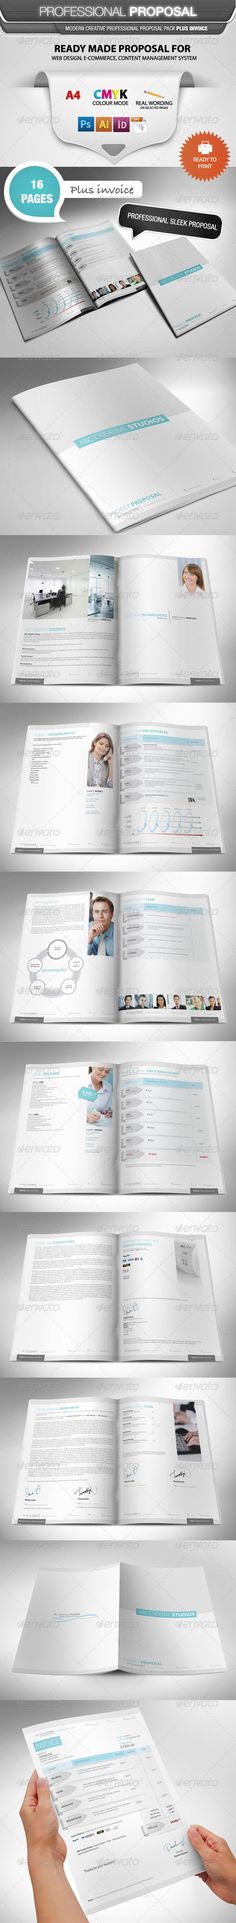 Professional Invoices Proposal templates, Fonts and Business - professional proposal templates